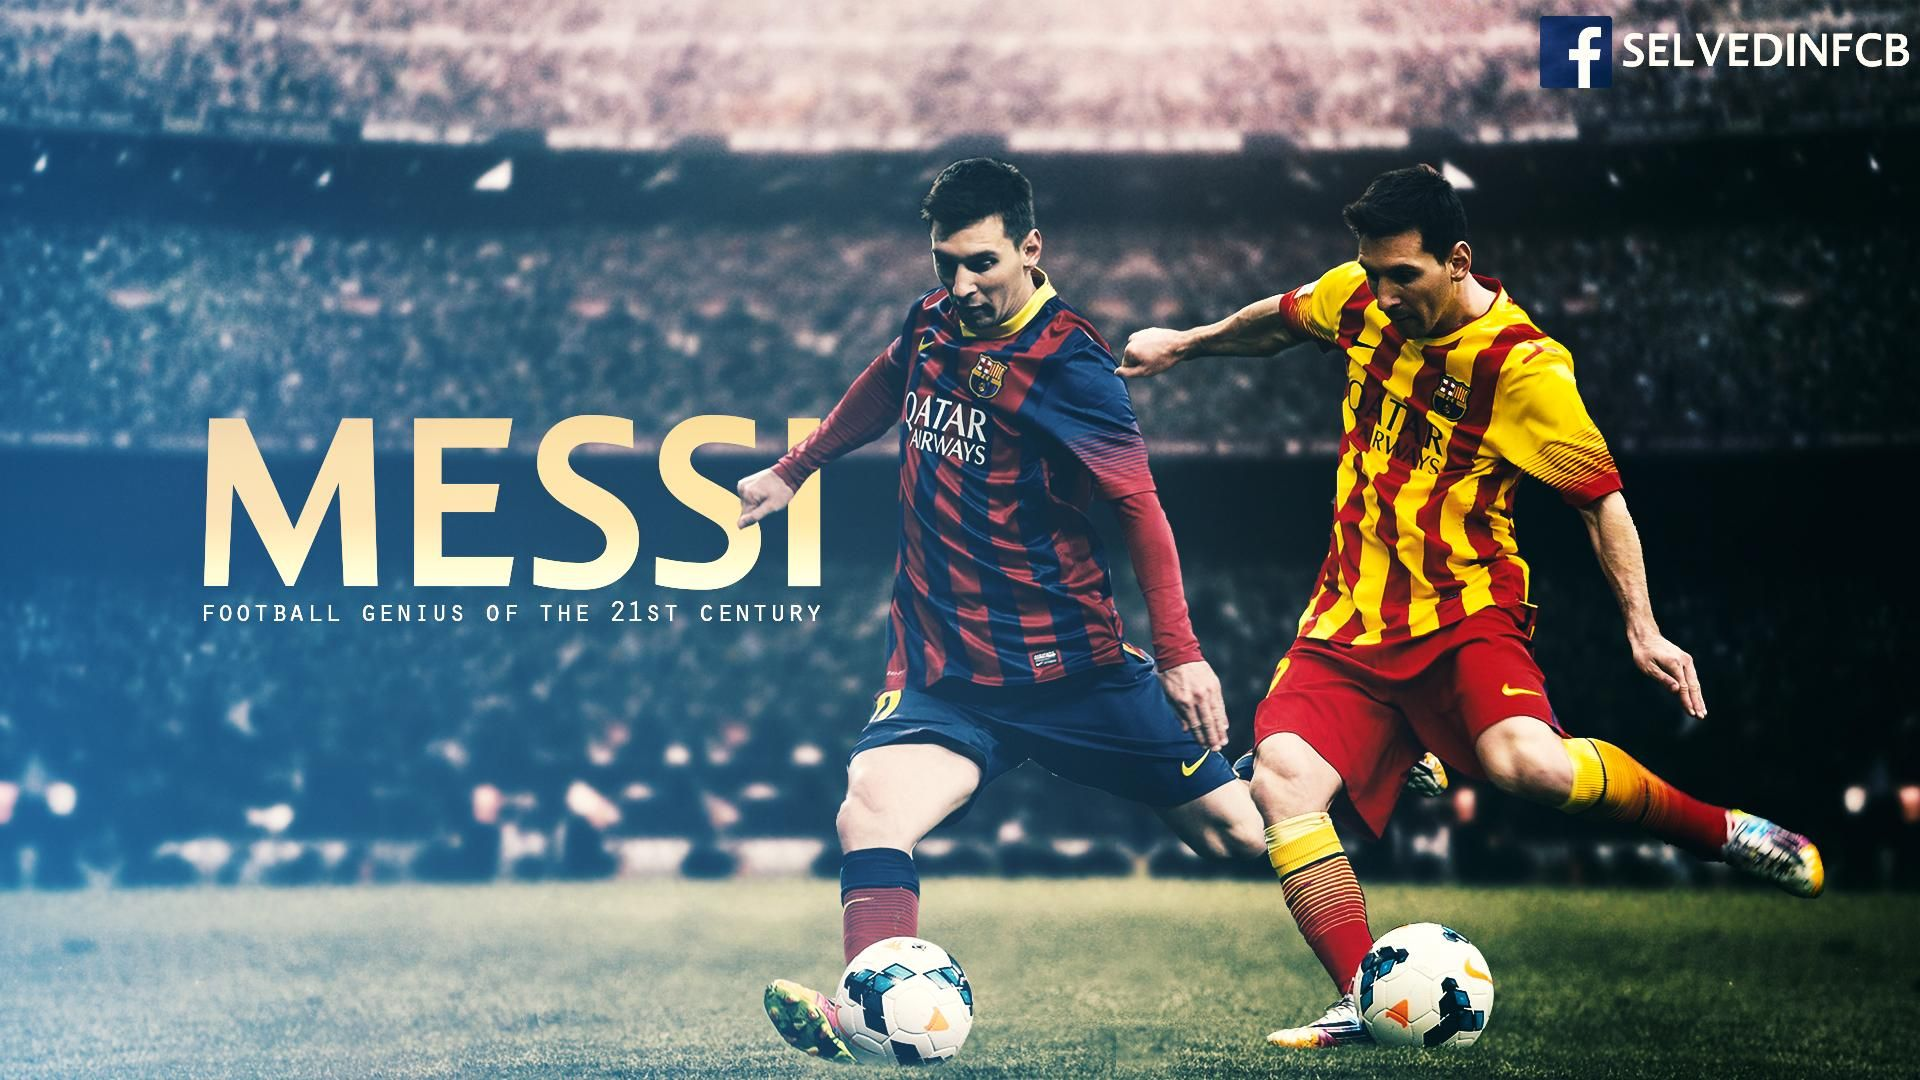 download football hd wallpapers for pc gallery | free wallpapers